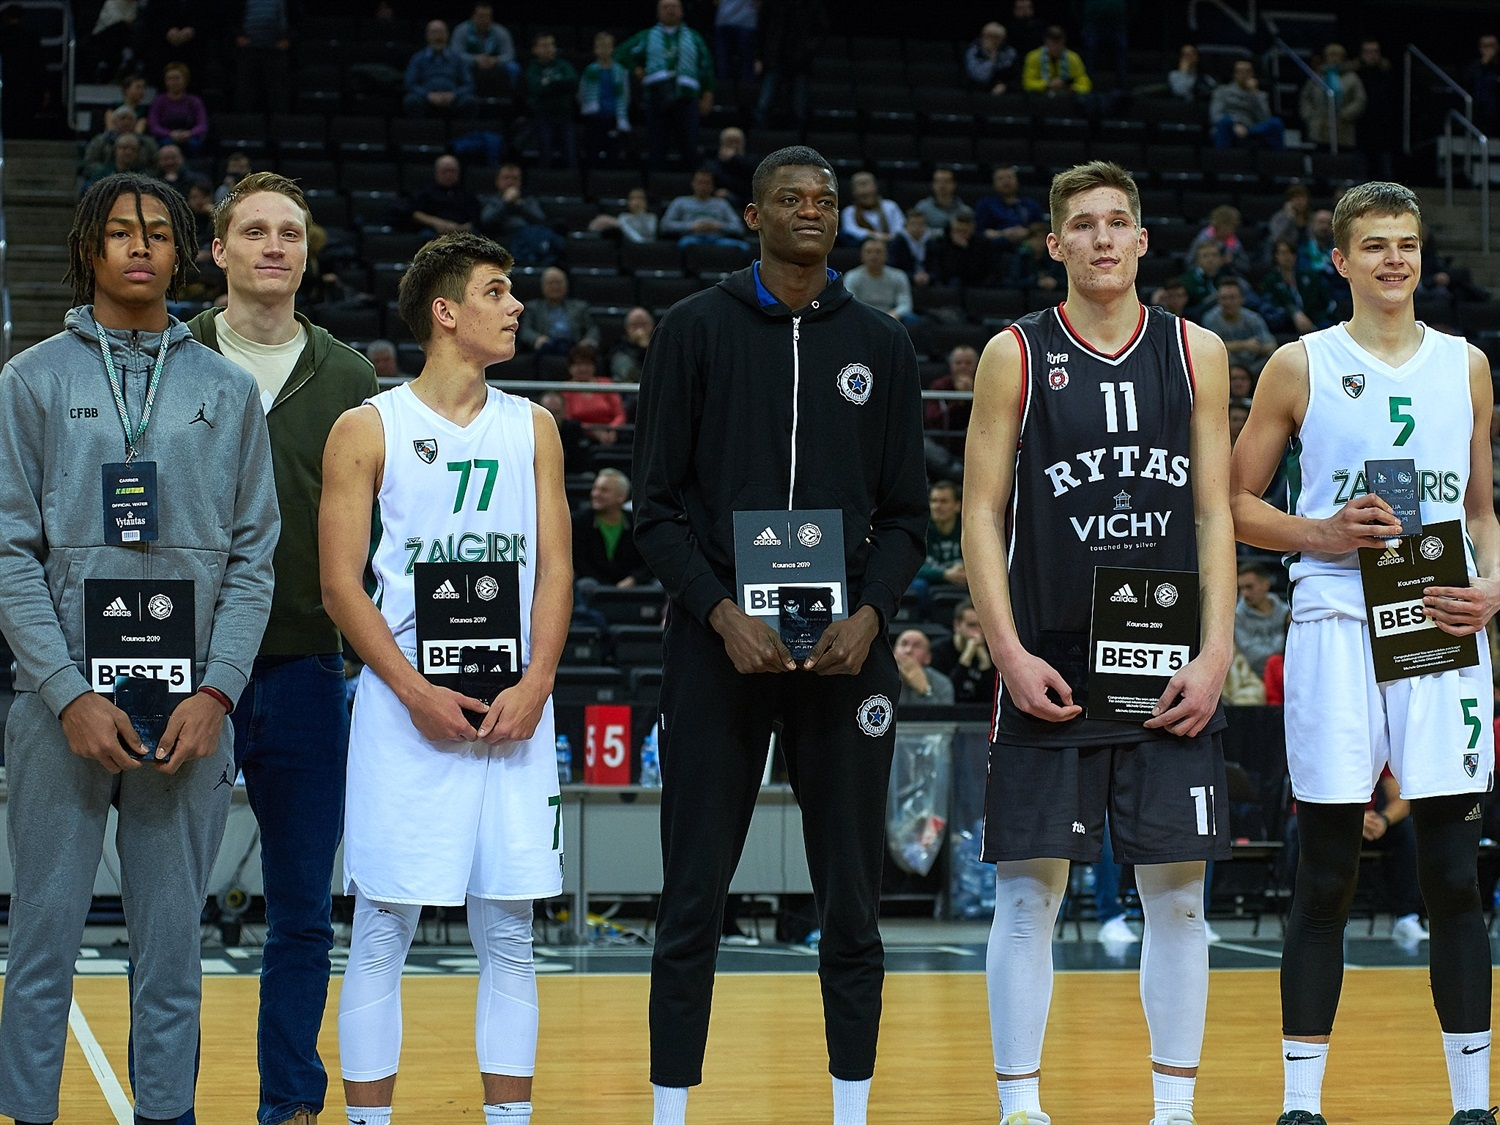 All-Tournament Team ANGT Kaunas 2019 (photo Zalgiris) - JT18